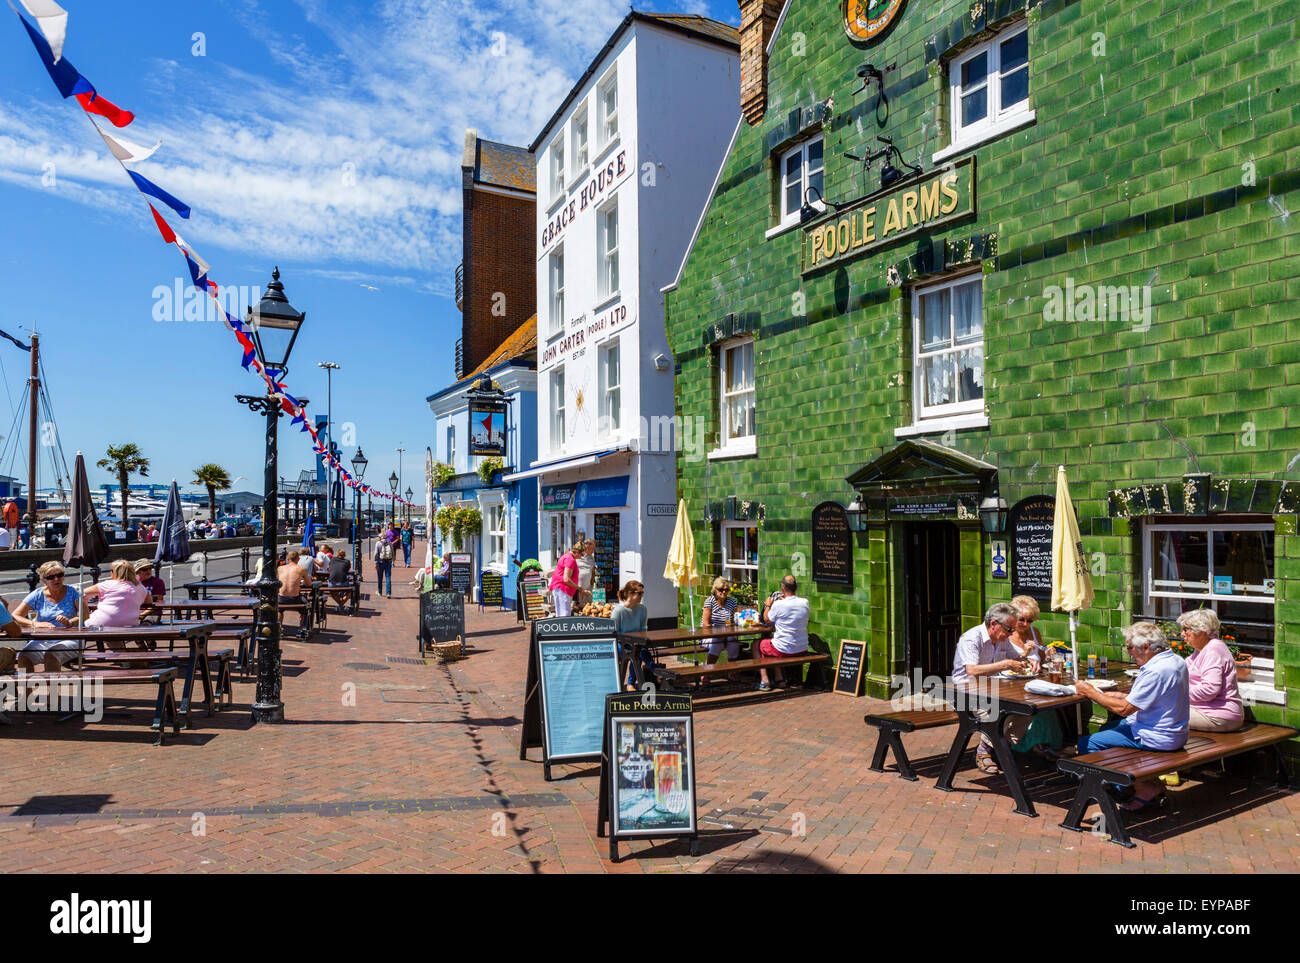 People sitting outside the Poole Arms pub on The Quay in Poole, Dorset, England, UK - Stock Image